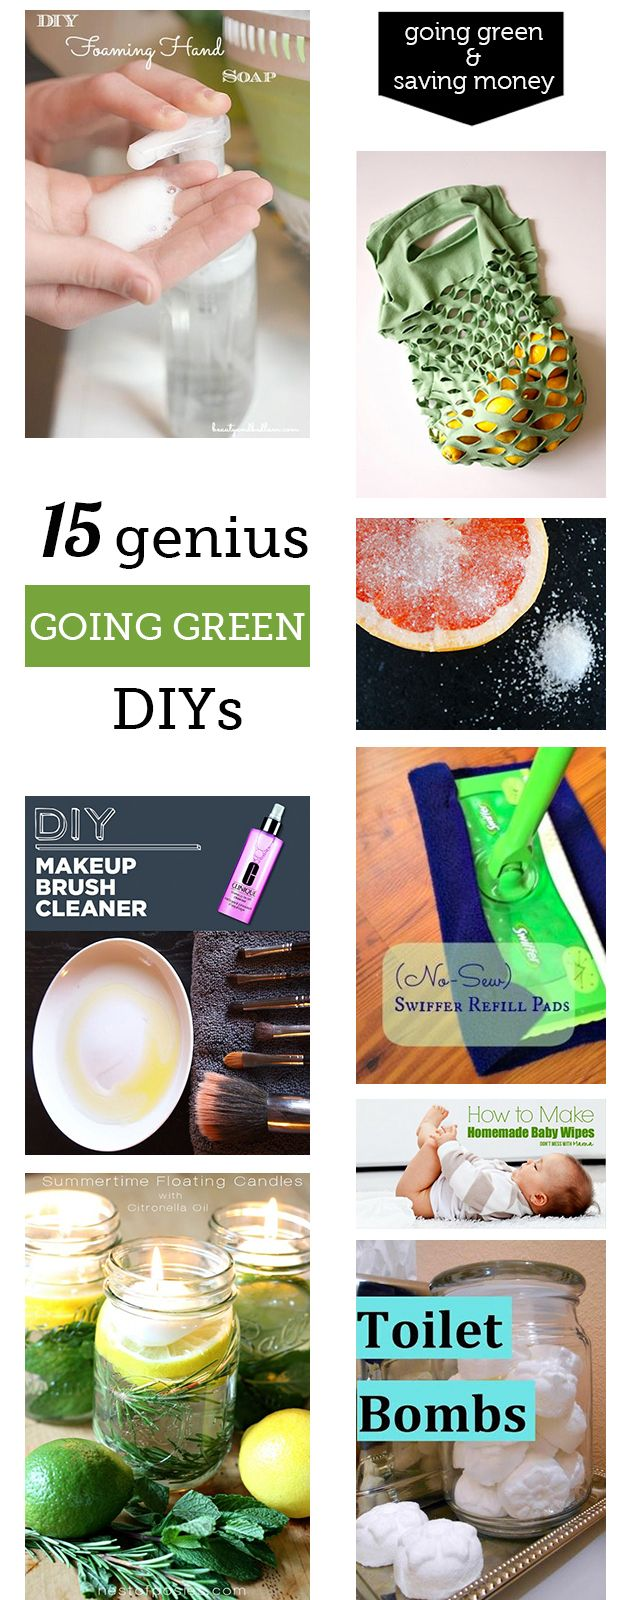 I might spend all weekend making these DIY green clean and beauty products - the homemade foaming hand soap costing only $1/year is my favorite!